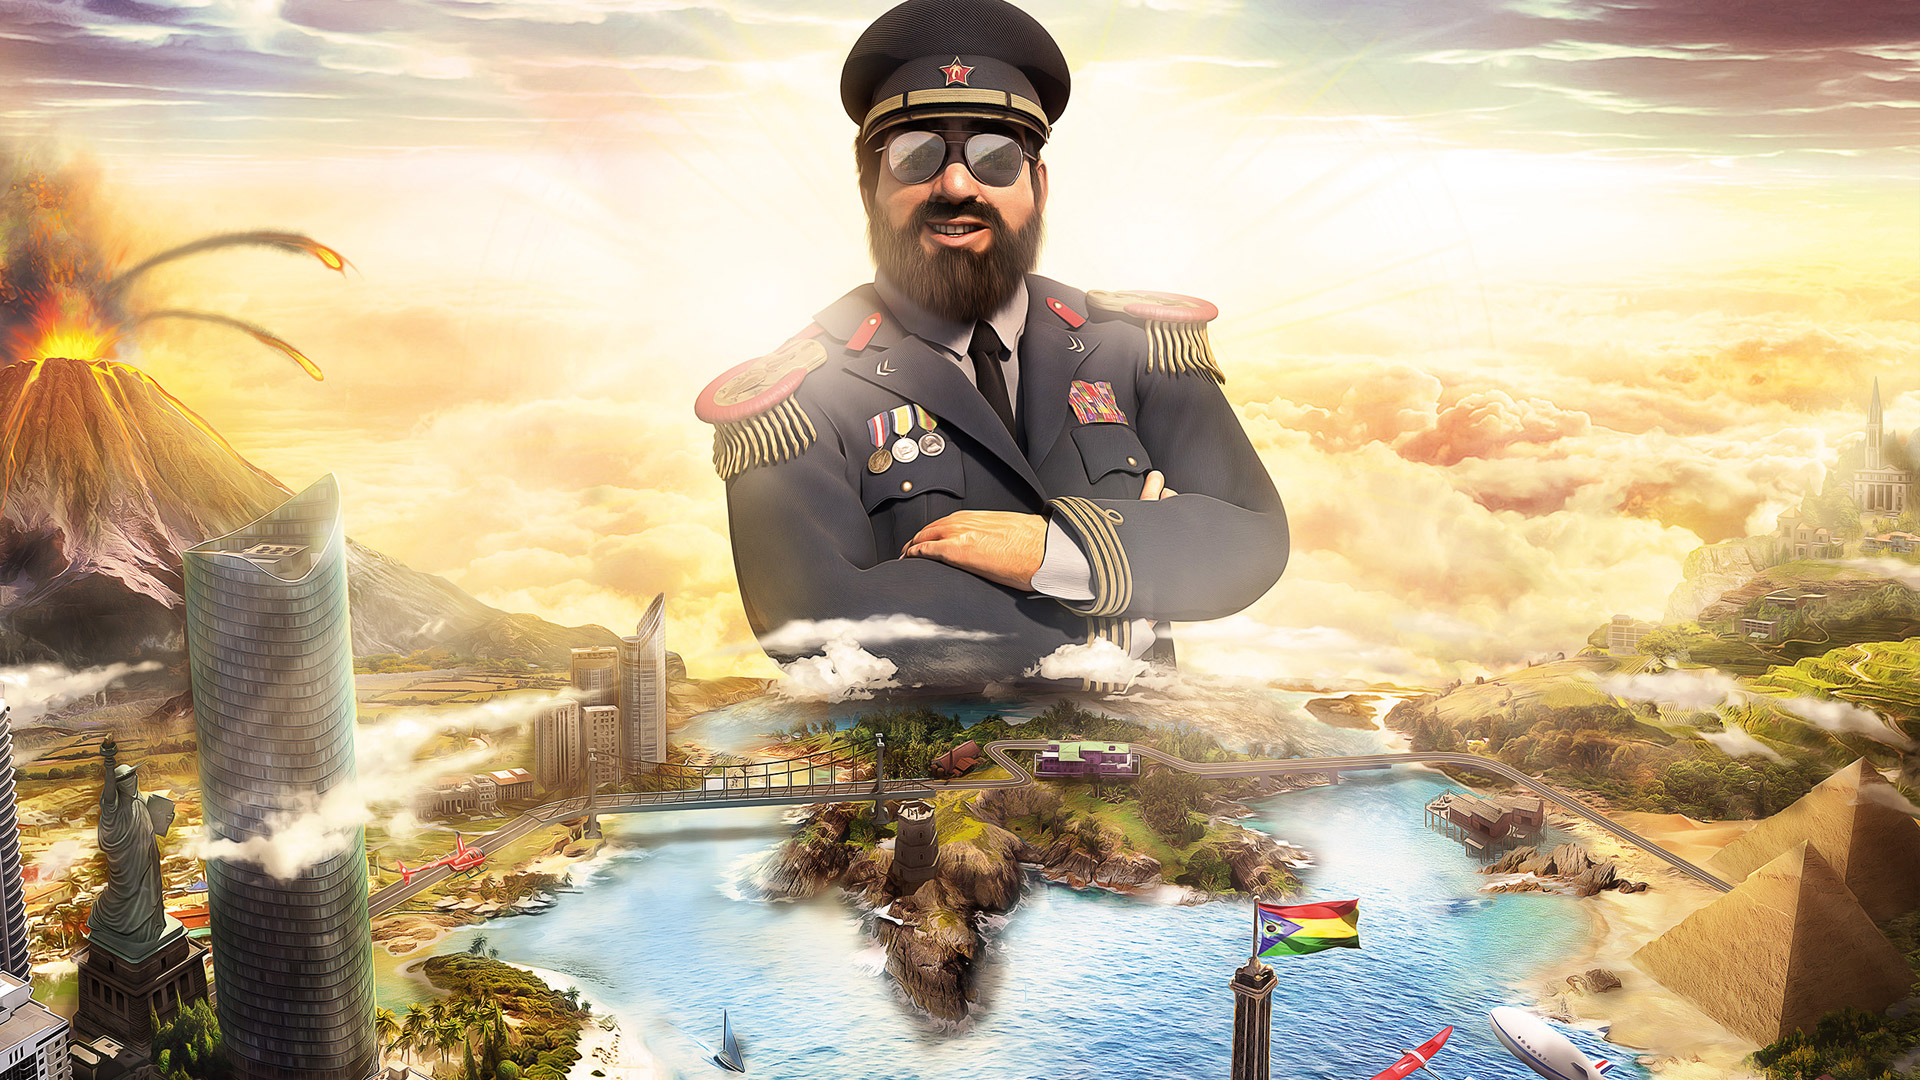 Free Tropico 6 Wallpaper in 1920x1080